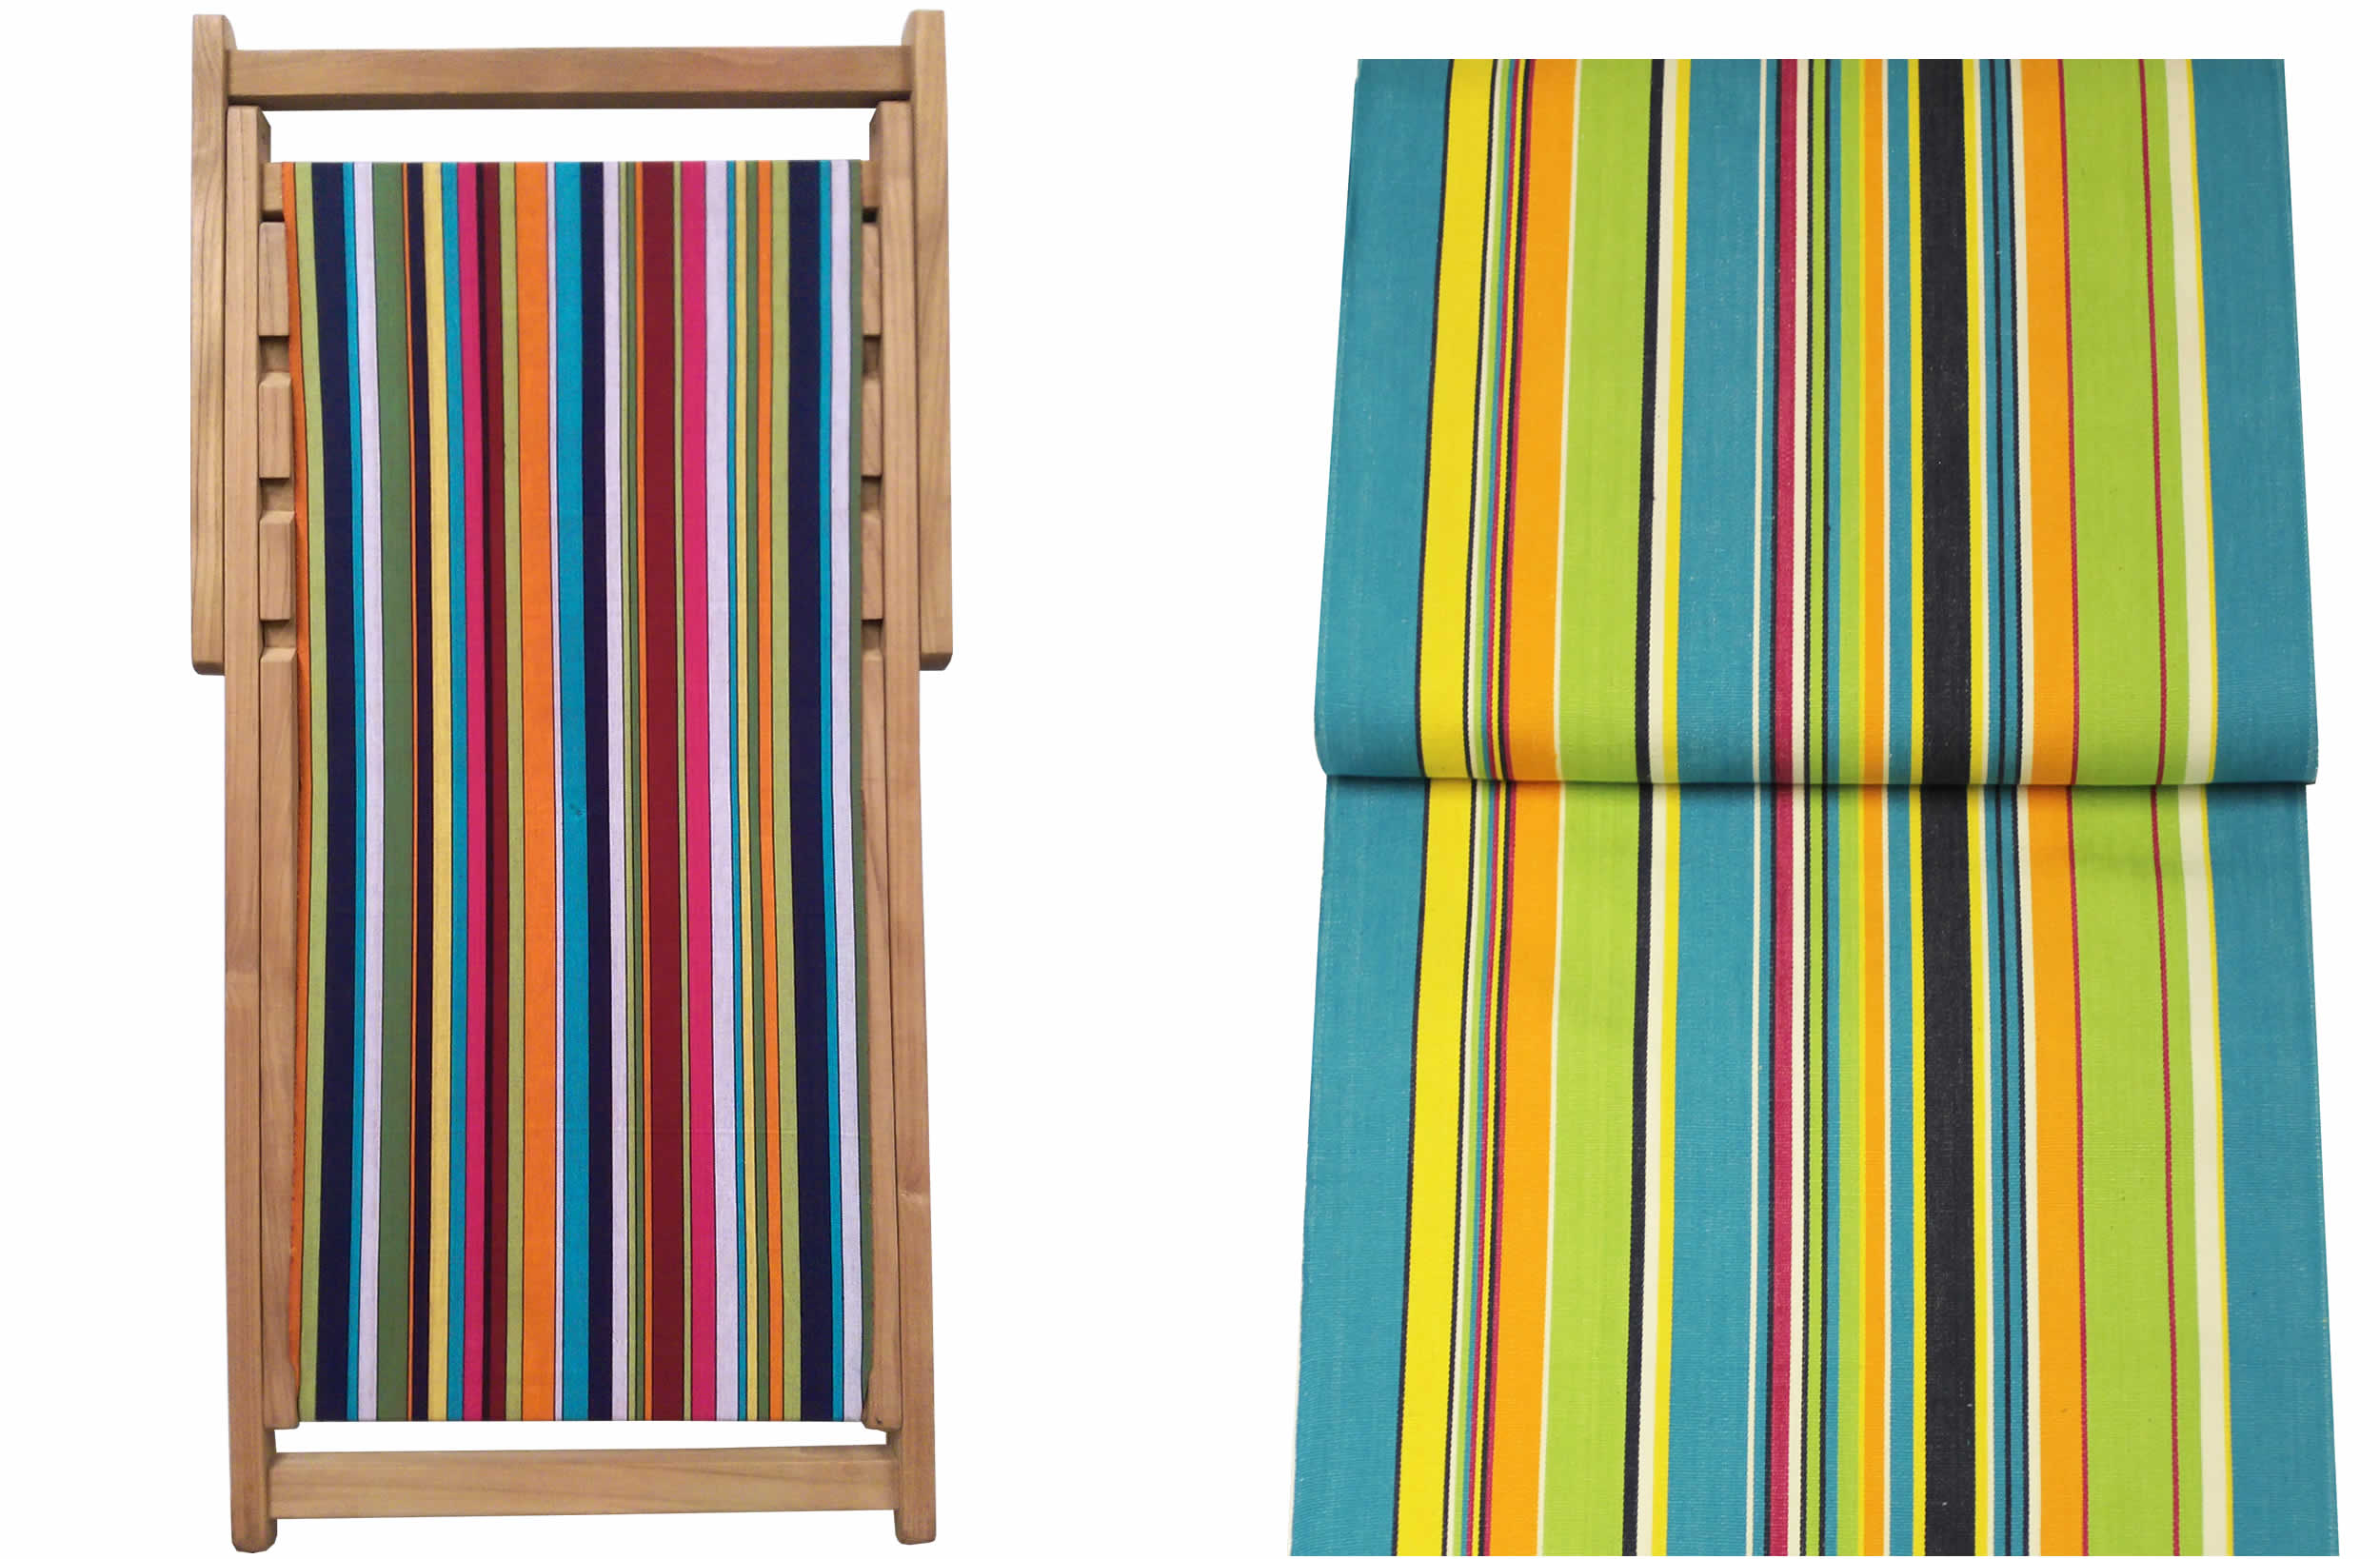 Teak Deck Chairs turquoise, lime, navy stripes